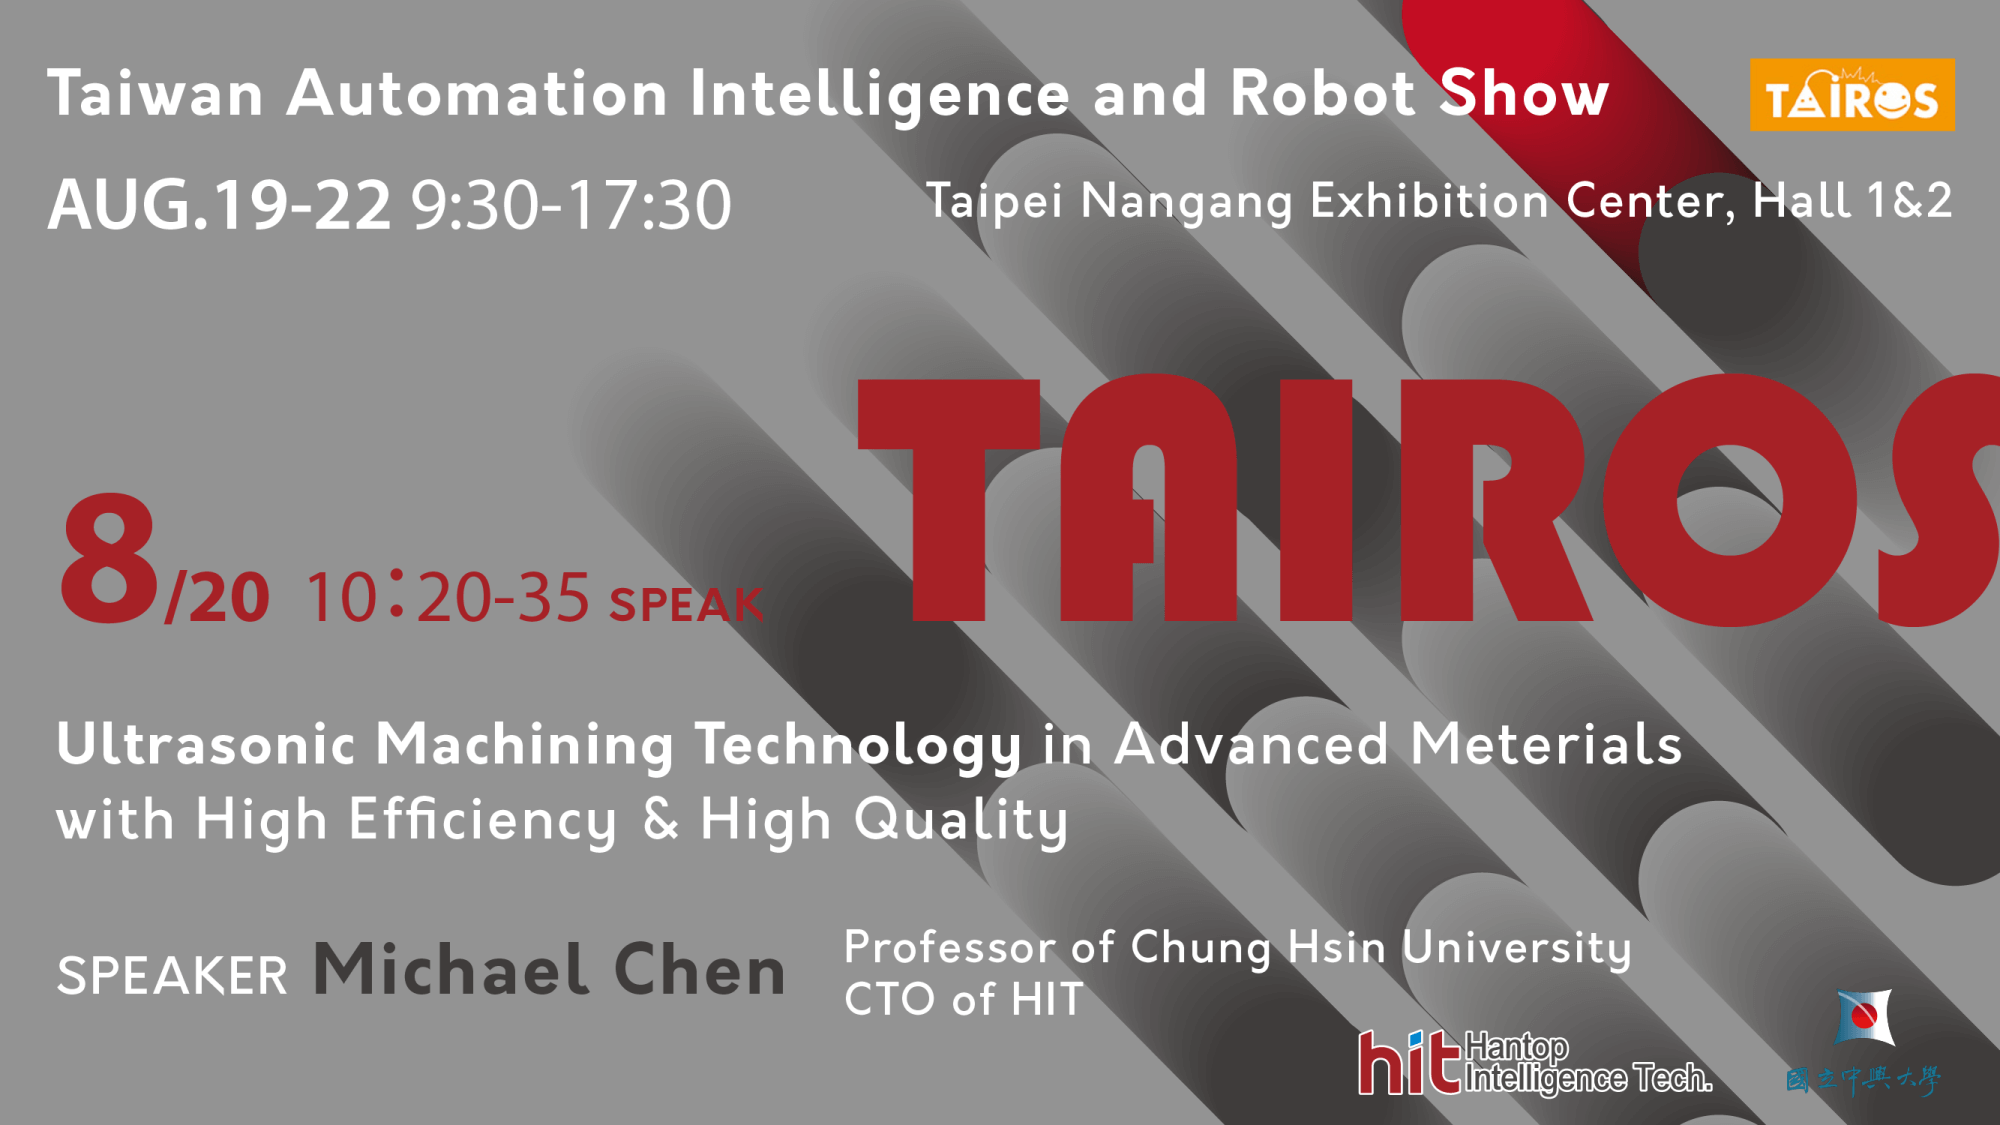 HIT Exhibition Info of TAIROS